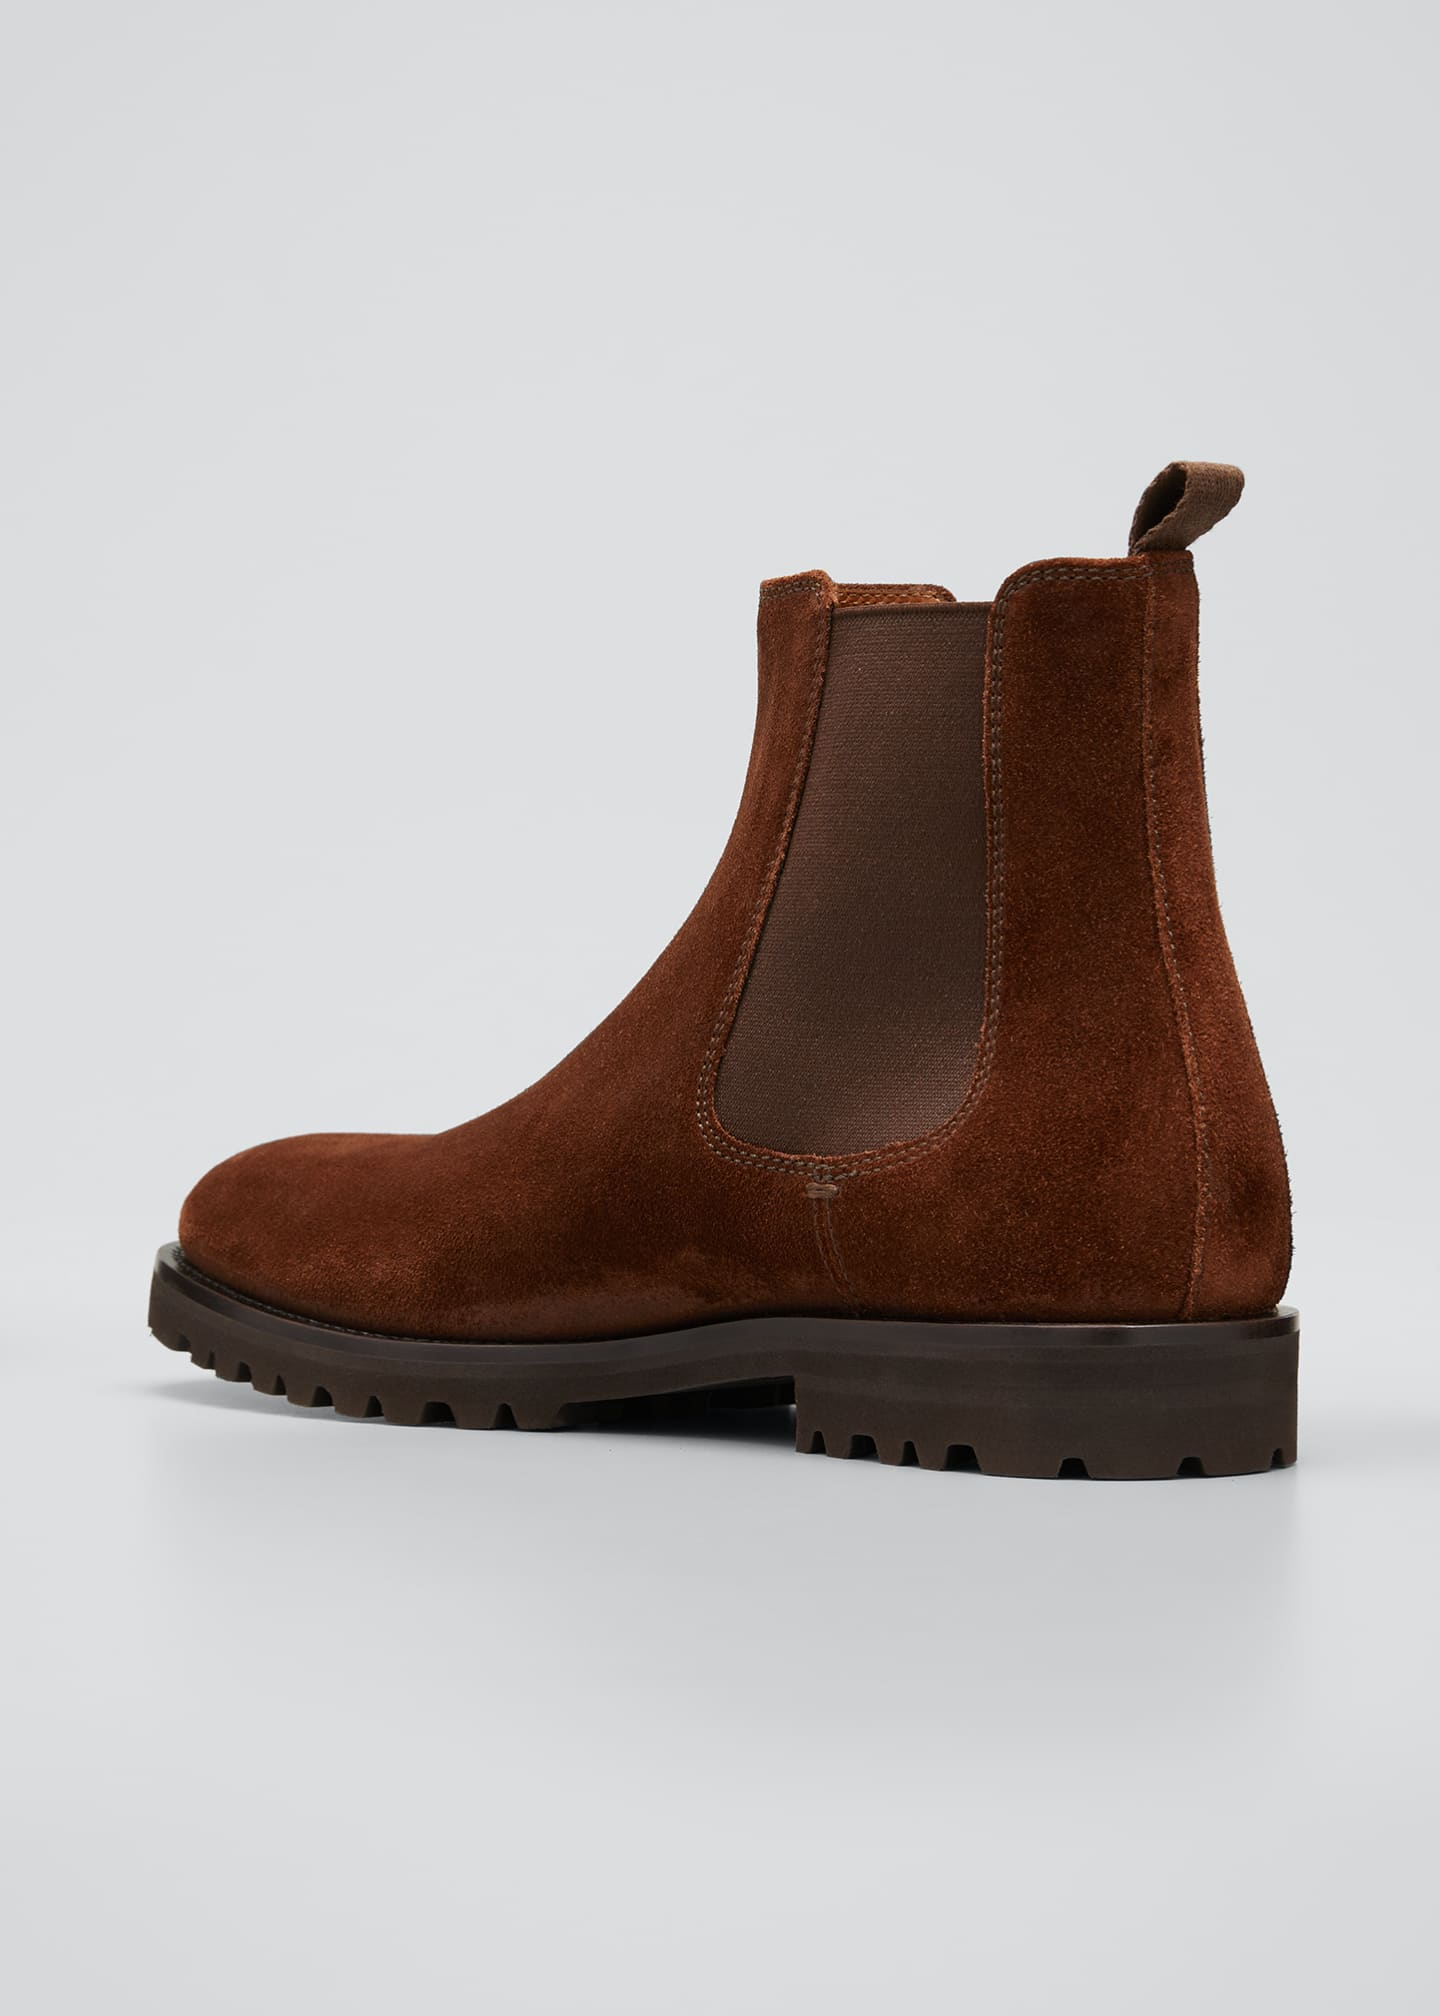 Image 2 of 3: Men's Suede Chelsea Boots